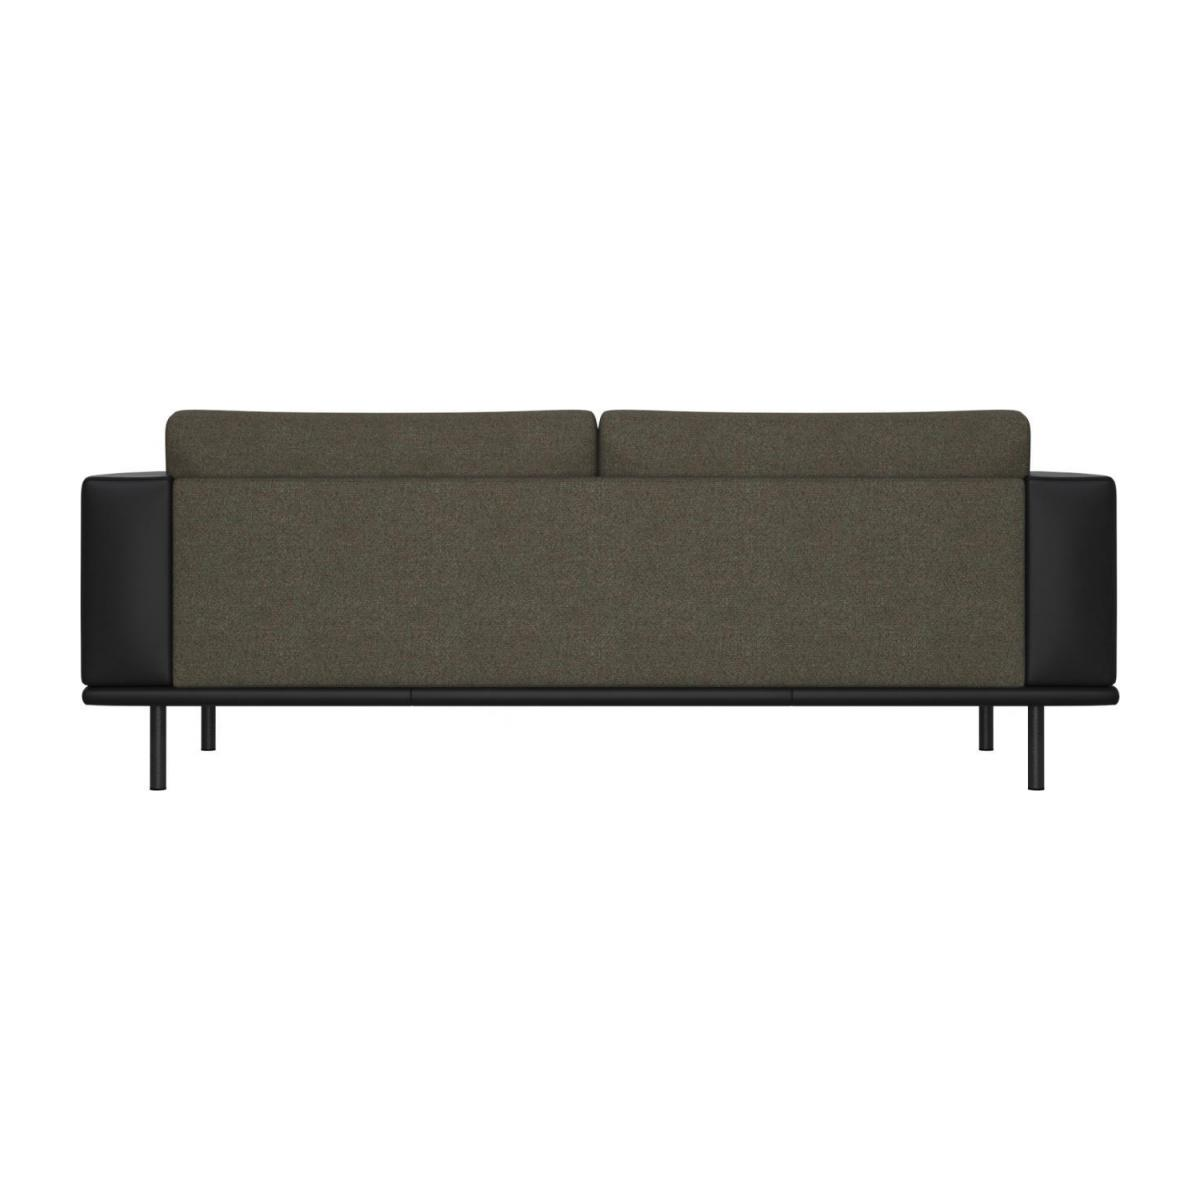 3 seater sofa in Lecce fabric, slade grey with base and armrests in black leather n°3